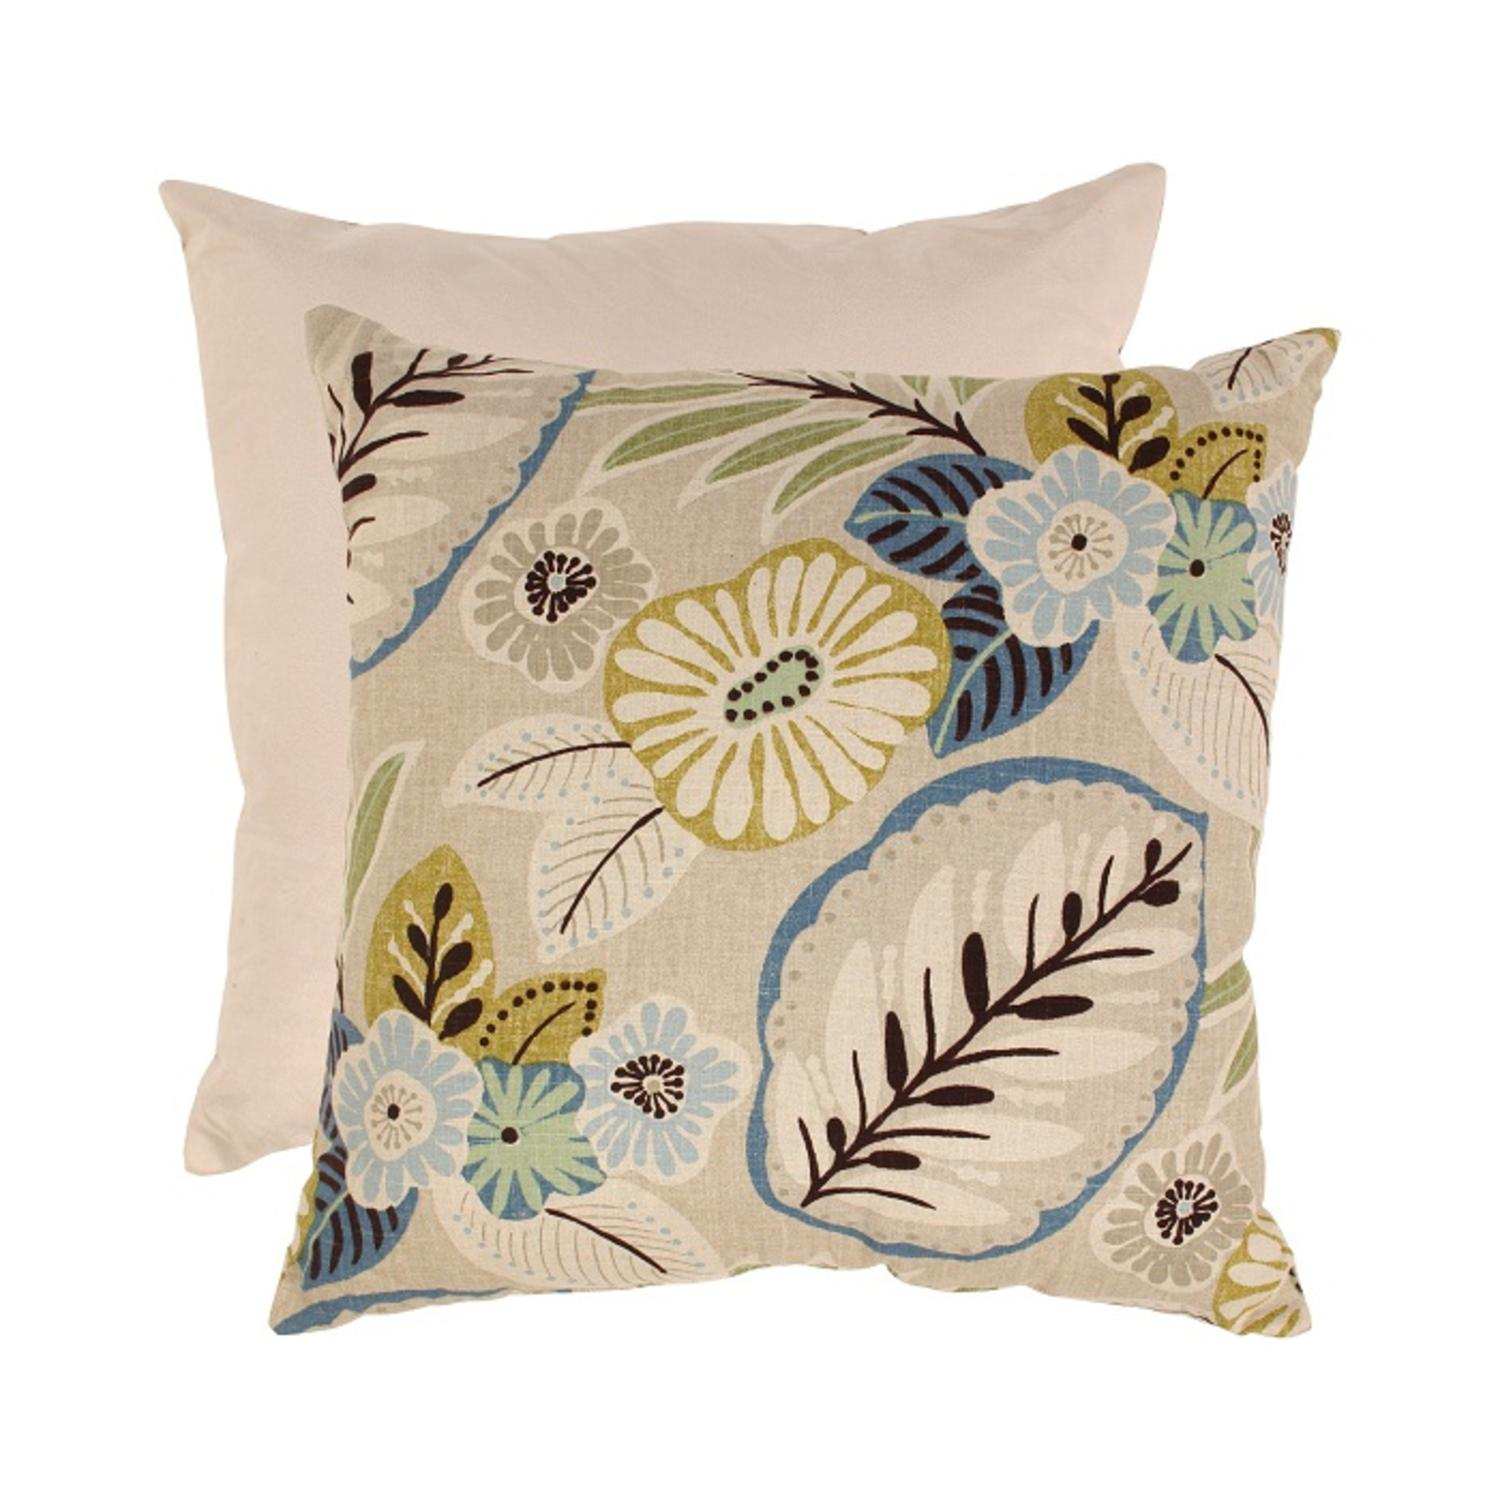 "Eco-Friendly Tropical Blue and Beige Floral Floor Pillow 23"" x 23"""